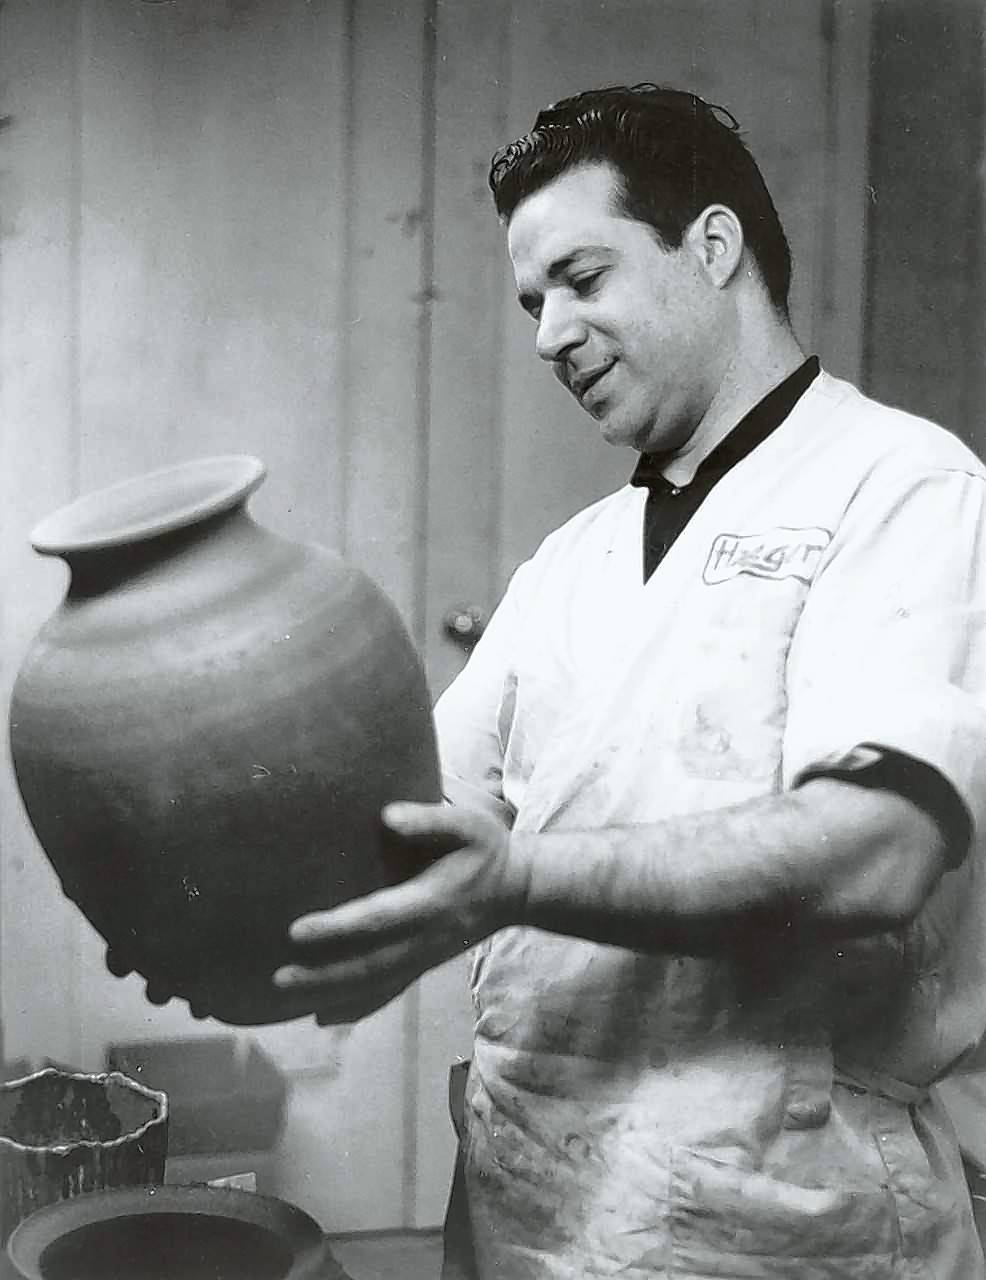 A master potter for Haeger Potteries in East Dundee for 32 years, Sebastiano Maglio was a showman. He did exhibitions at the Haeger store, at trade shows, at universities and at large events, making ceramics ranging from bowls and vases to whistles for the kids.